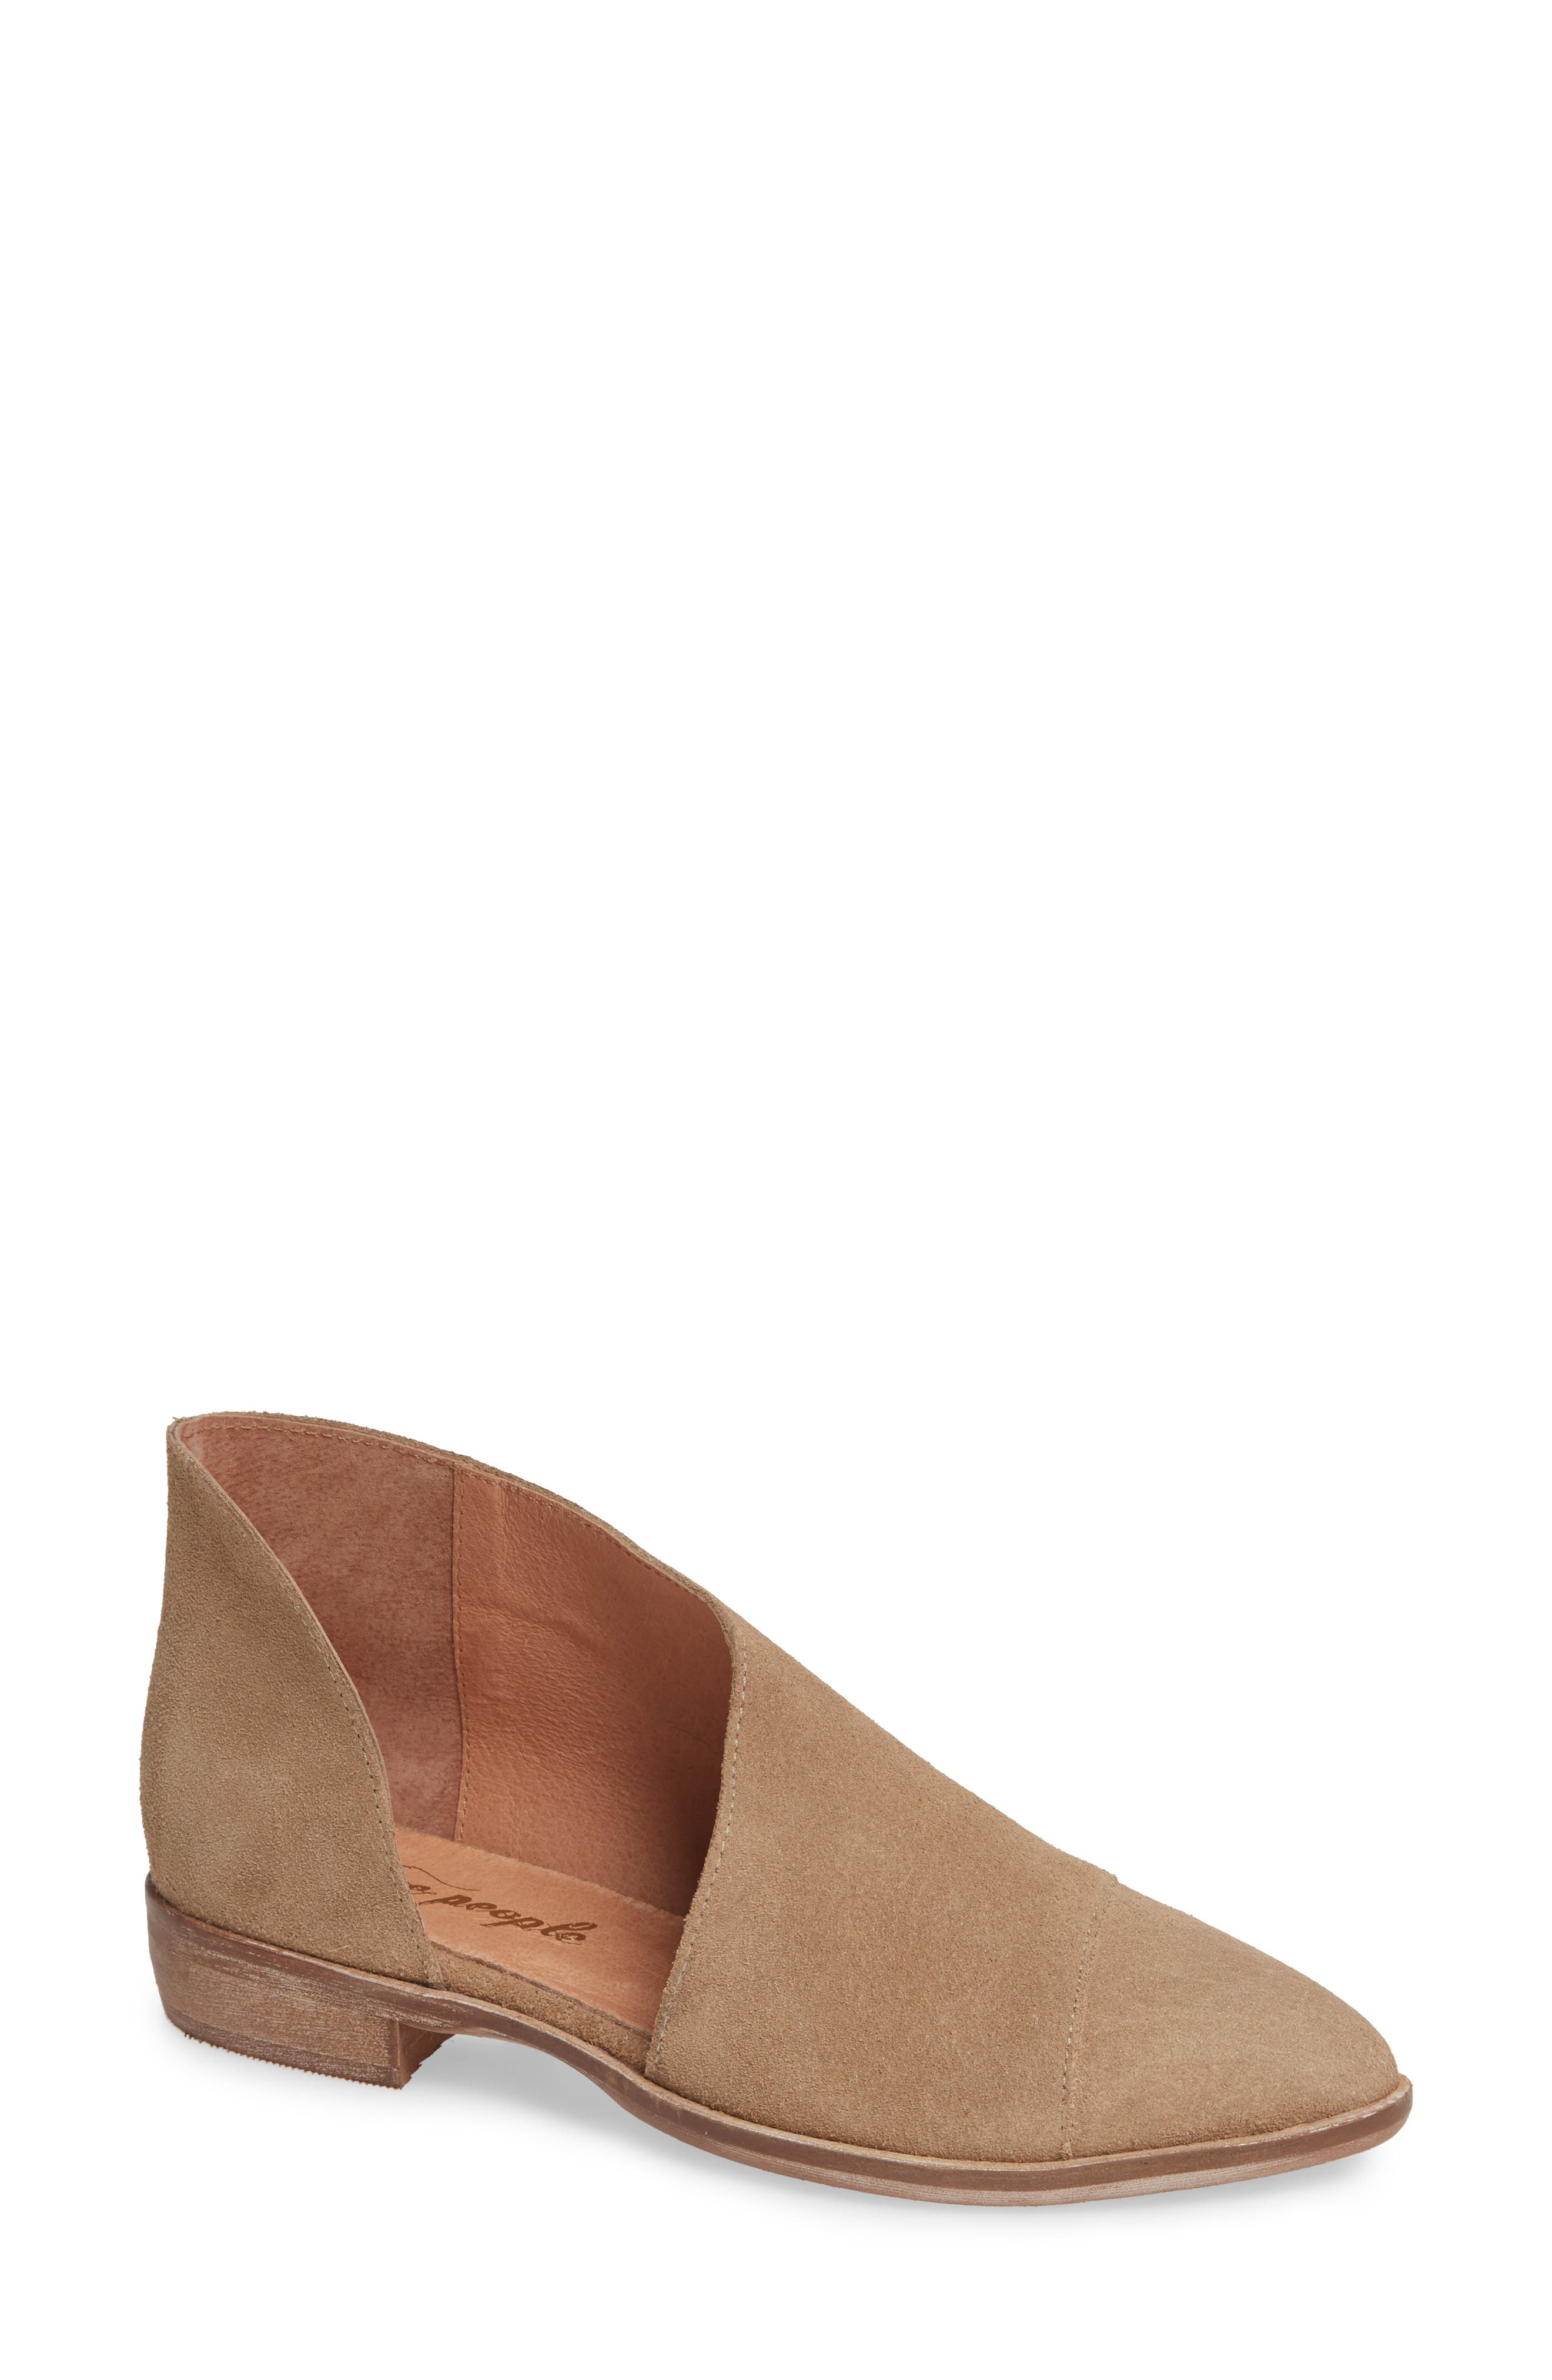 'Royale' Pointy Toe Flat,                         Main,                         color, BEIGE SUEDE